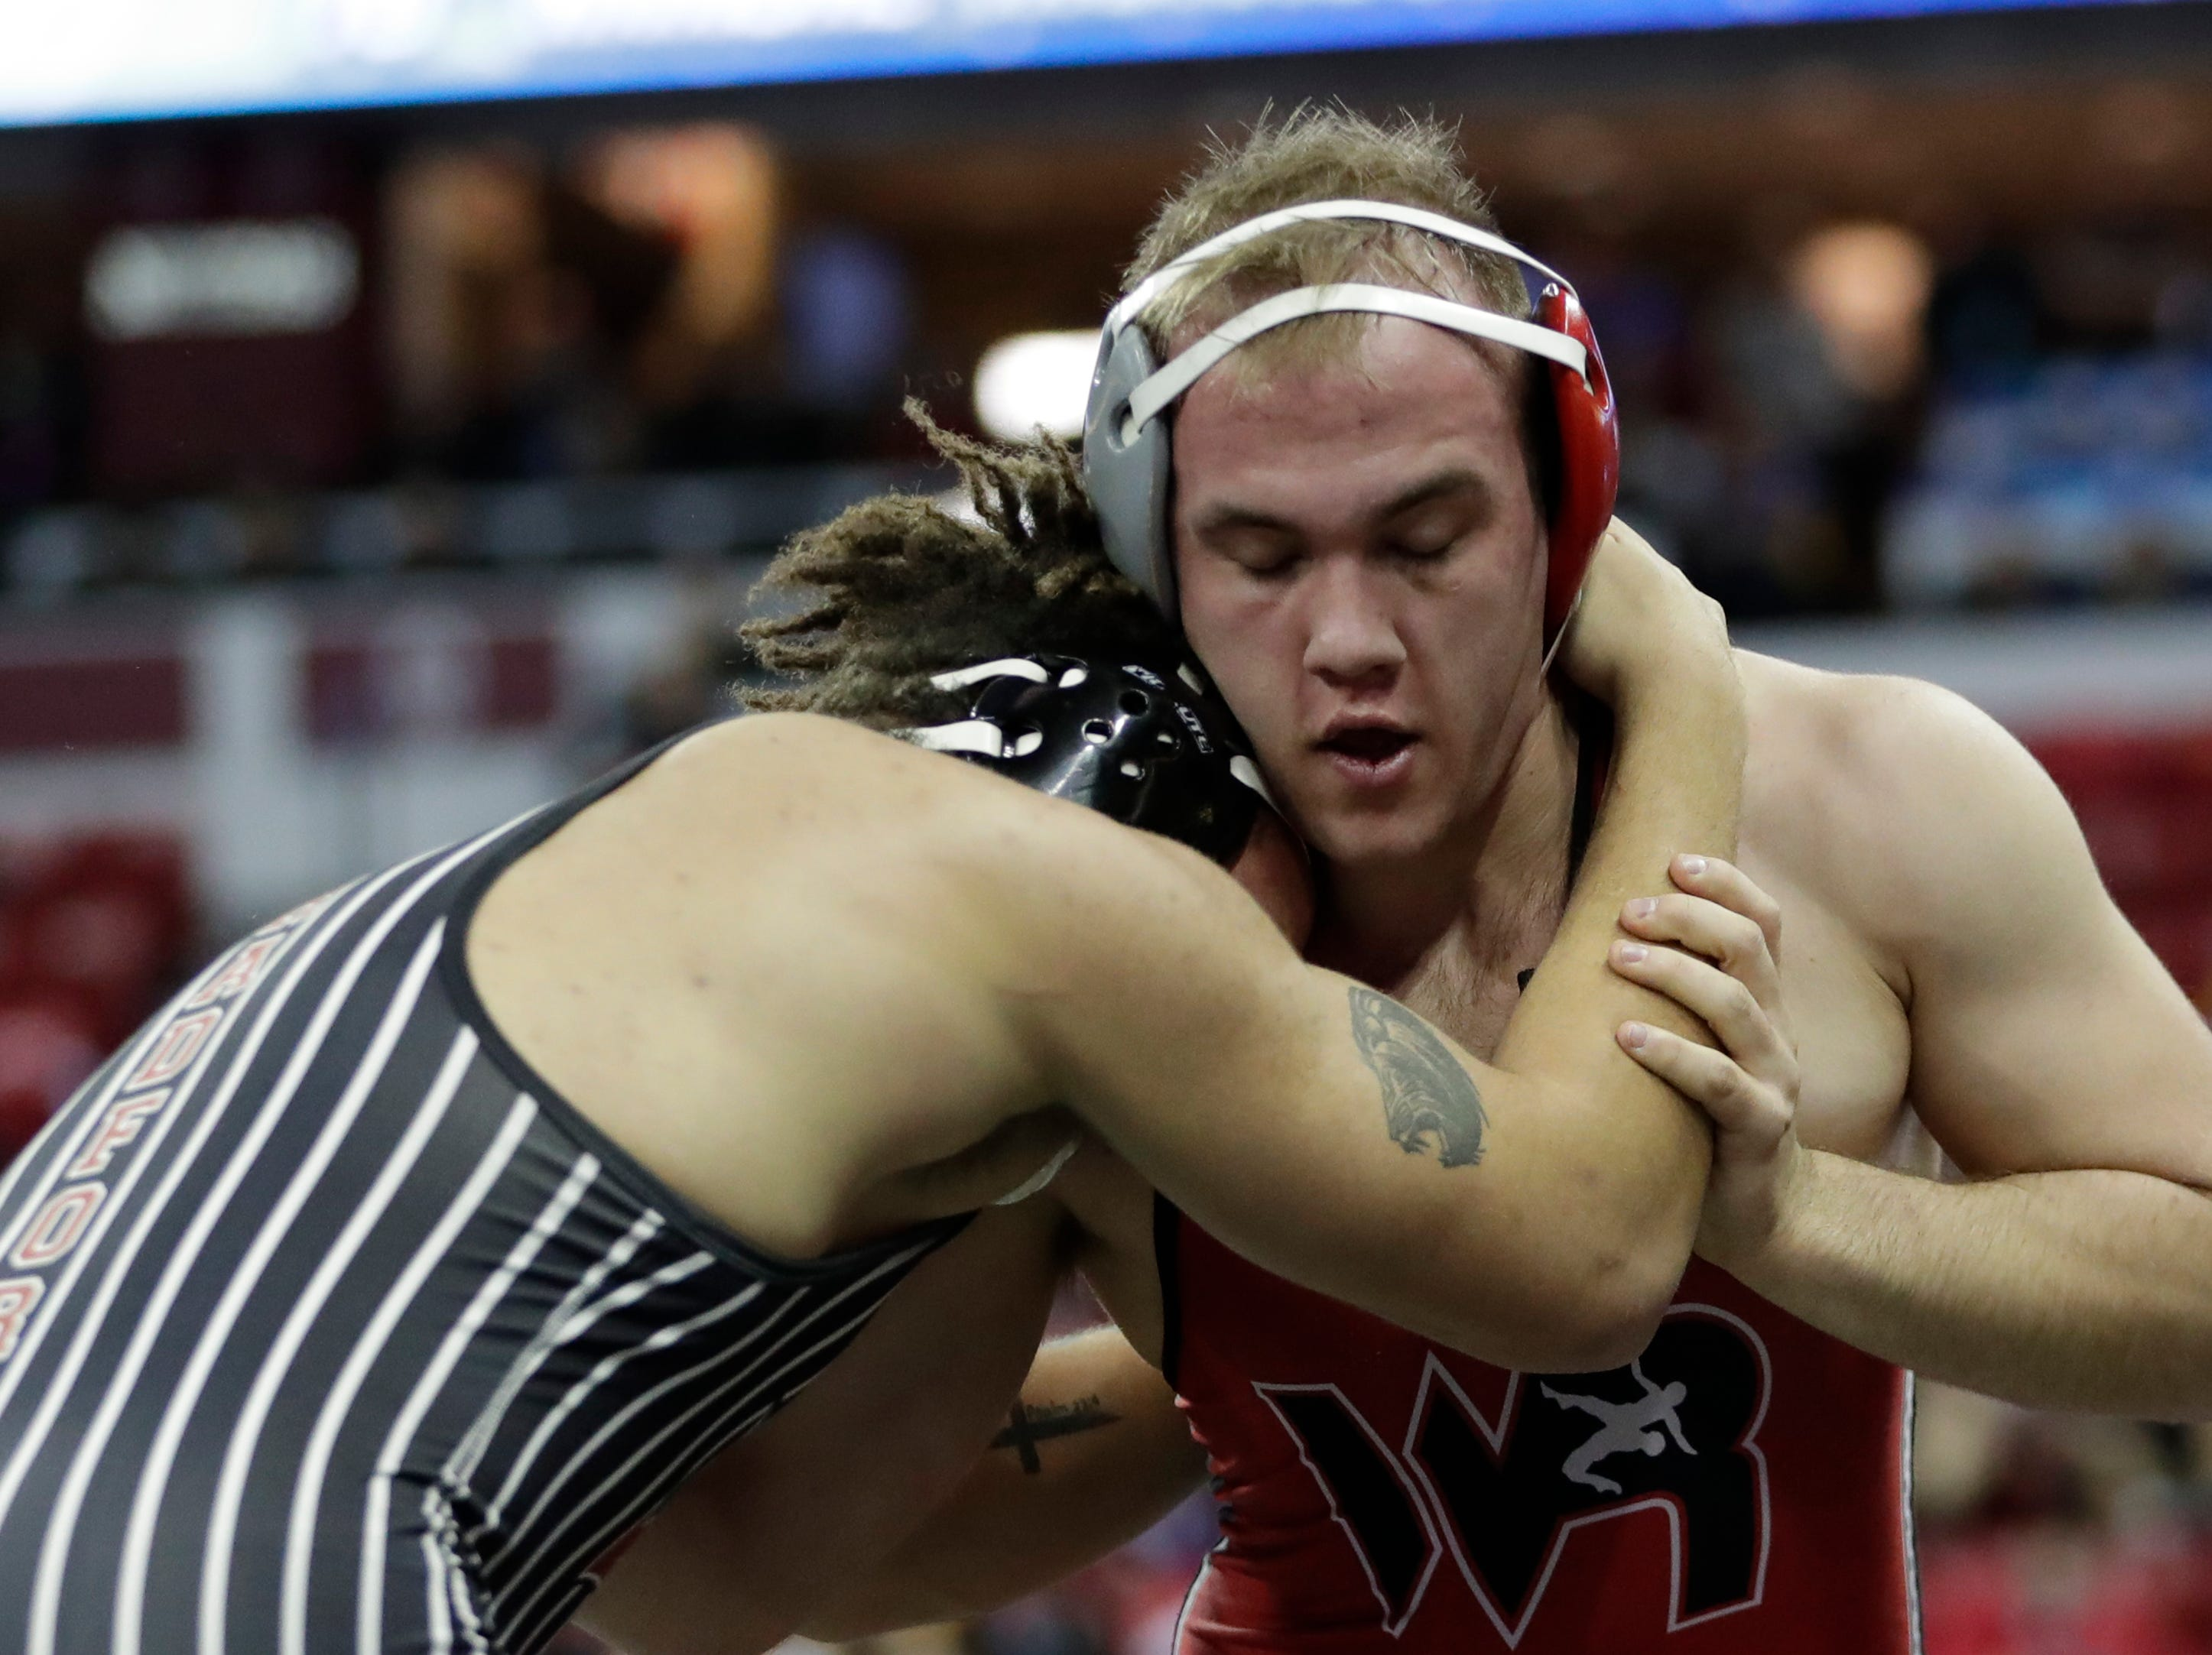 Wisconsin Rapids Lincoln's Layne Kalata wrestles Kenosha Bradford/Reuther's Kyle Bowens in a Division 1 220-pound weight class preliminary match during the WIAA state individual wrestling tournament at the Kohl Center Thursday, February 21, 2019, in Madison, Wis.